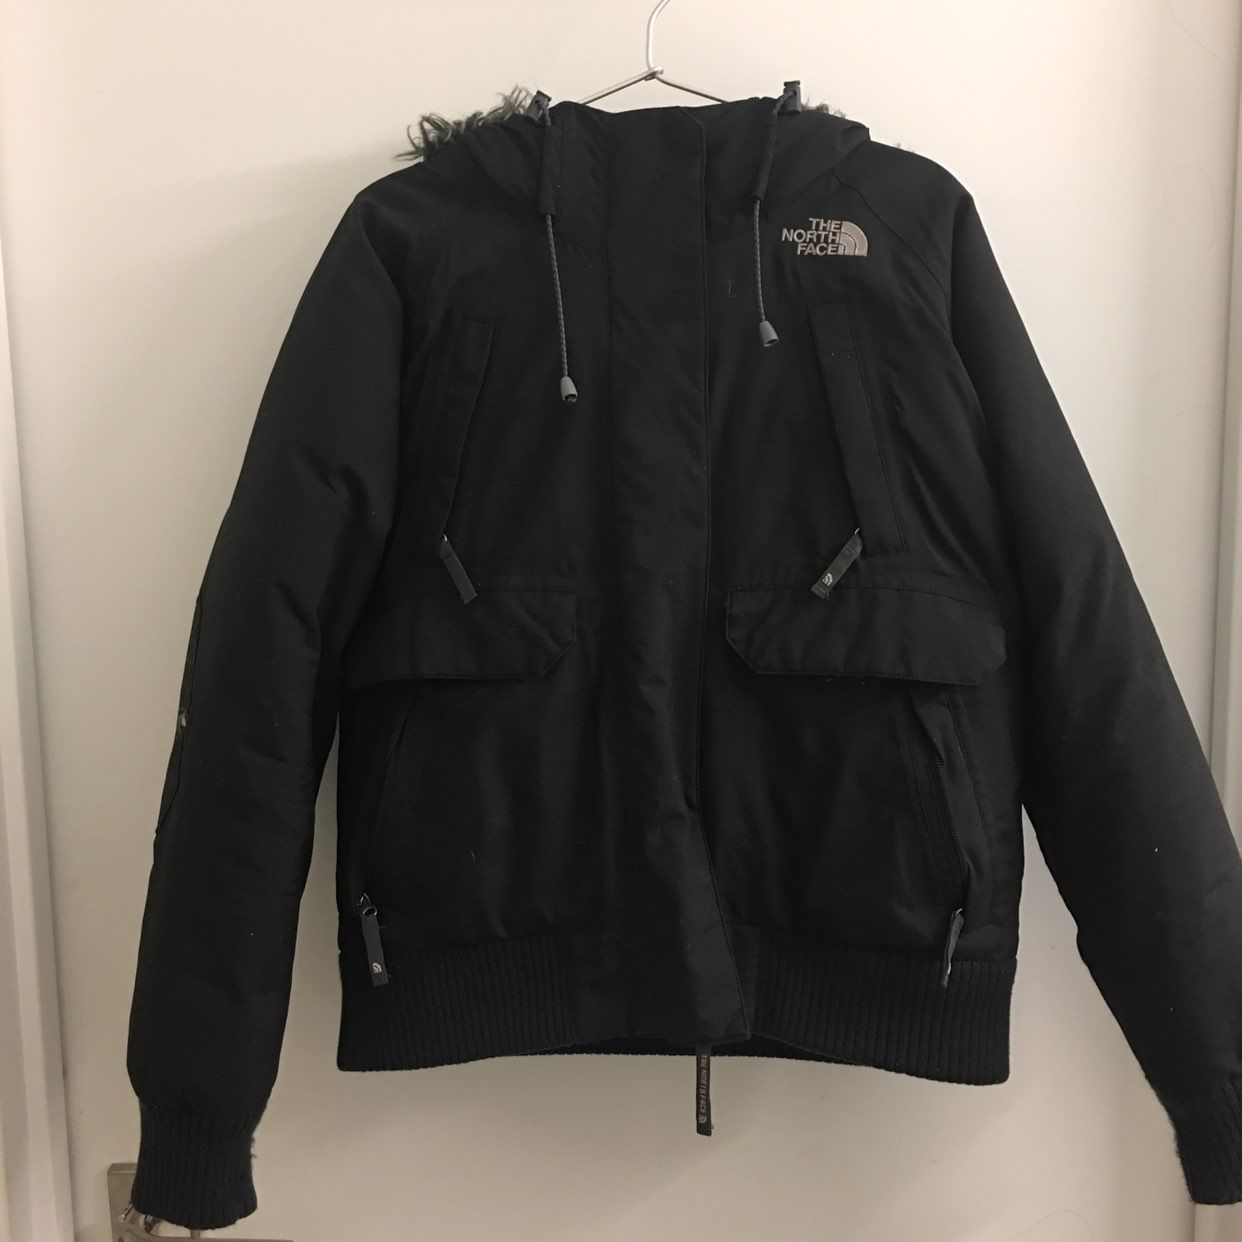 The North Face Women Hyvent Jacket